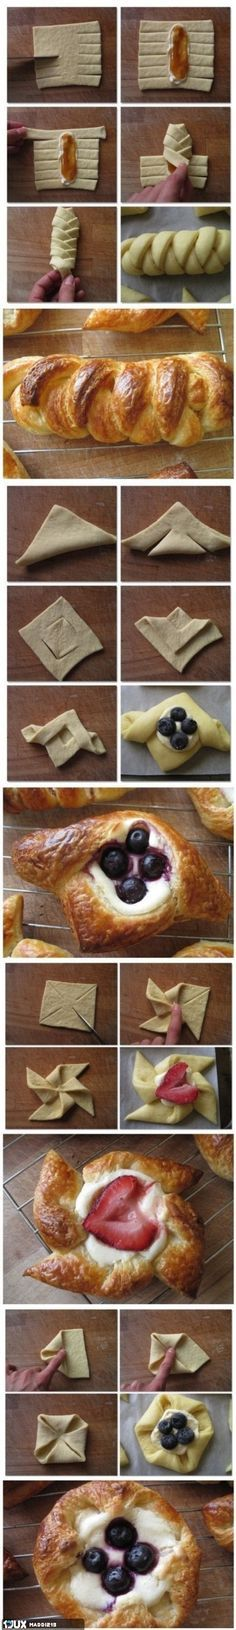 Pastry Folding Hacks Community Post: 40 Creative Food Hacks That Will Change The Way You Cook Fun Desserts, Delicious Desserts, Dessert Recipes, Yummy Food, Awesome Desserts, Gourmet Desserts, Fun Recipes, Plated Desserts, Recipe Ideas